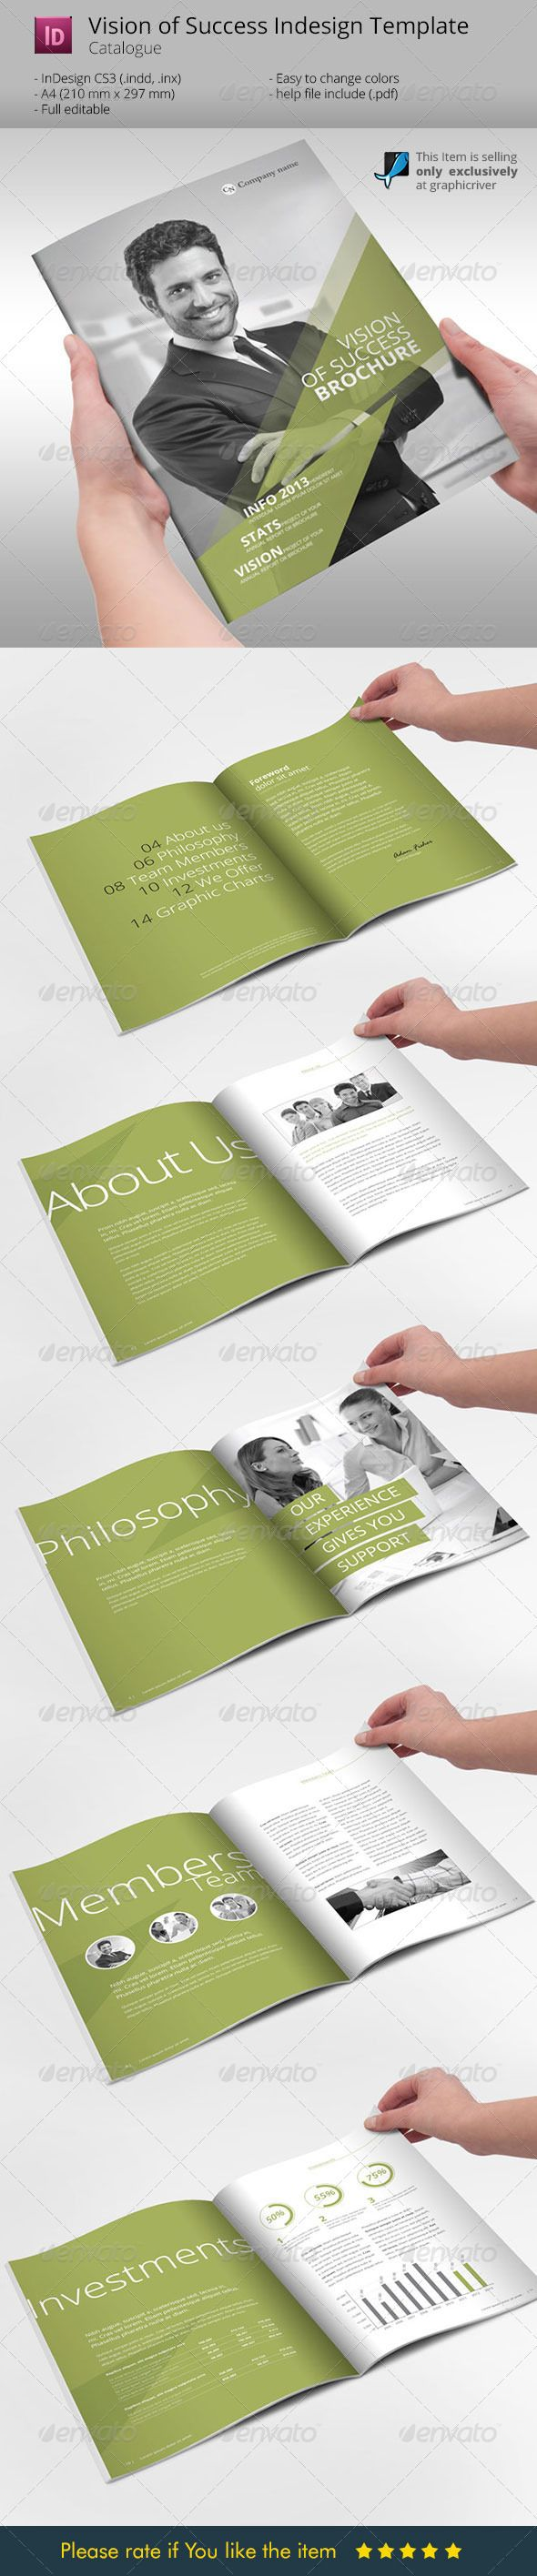 how to change page dimension in indesign